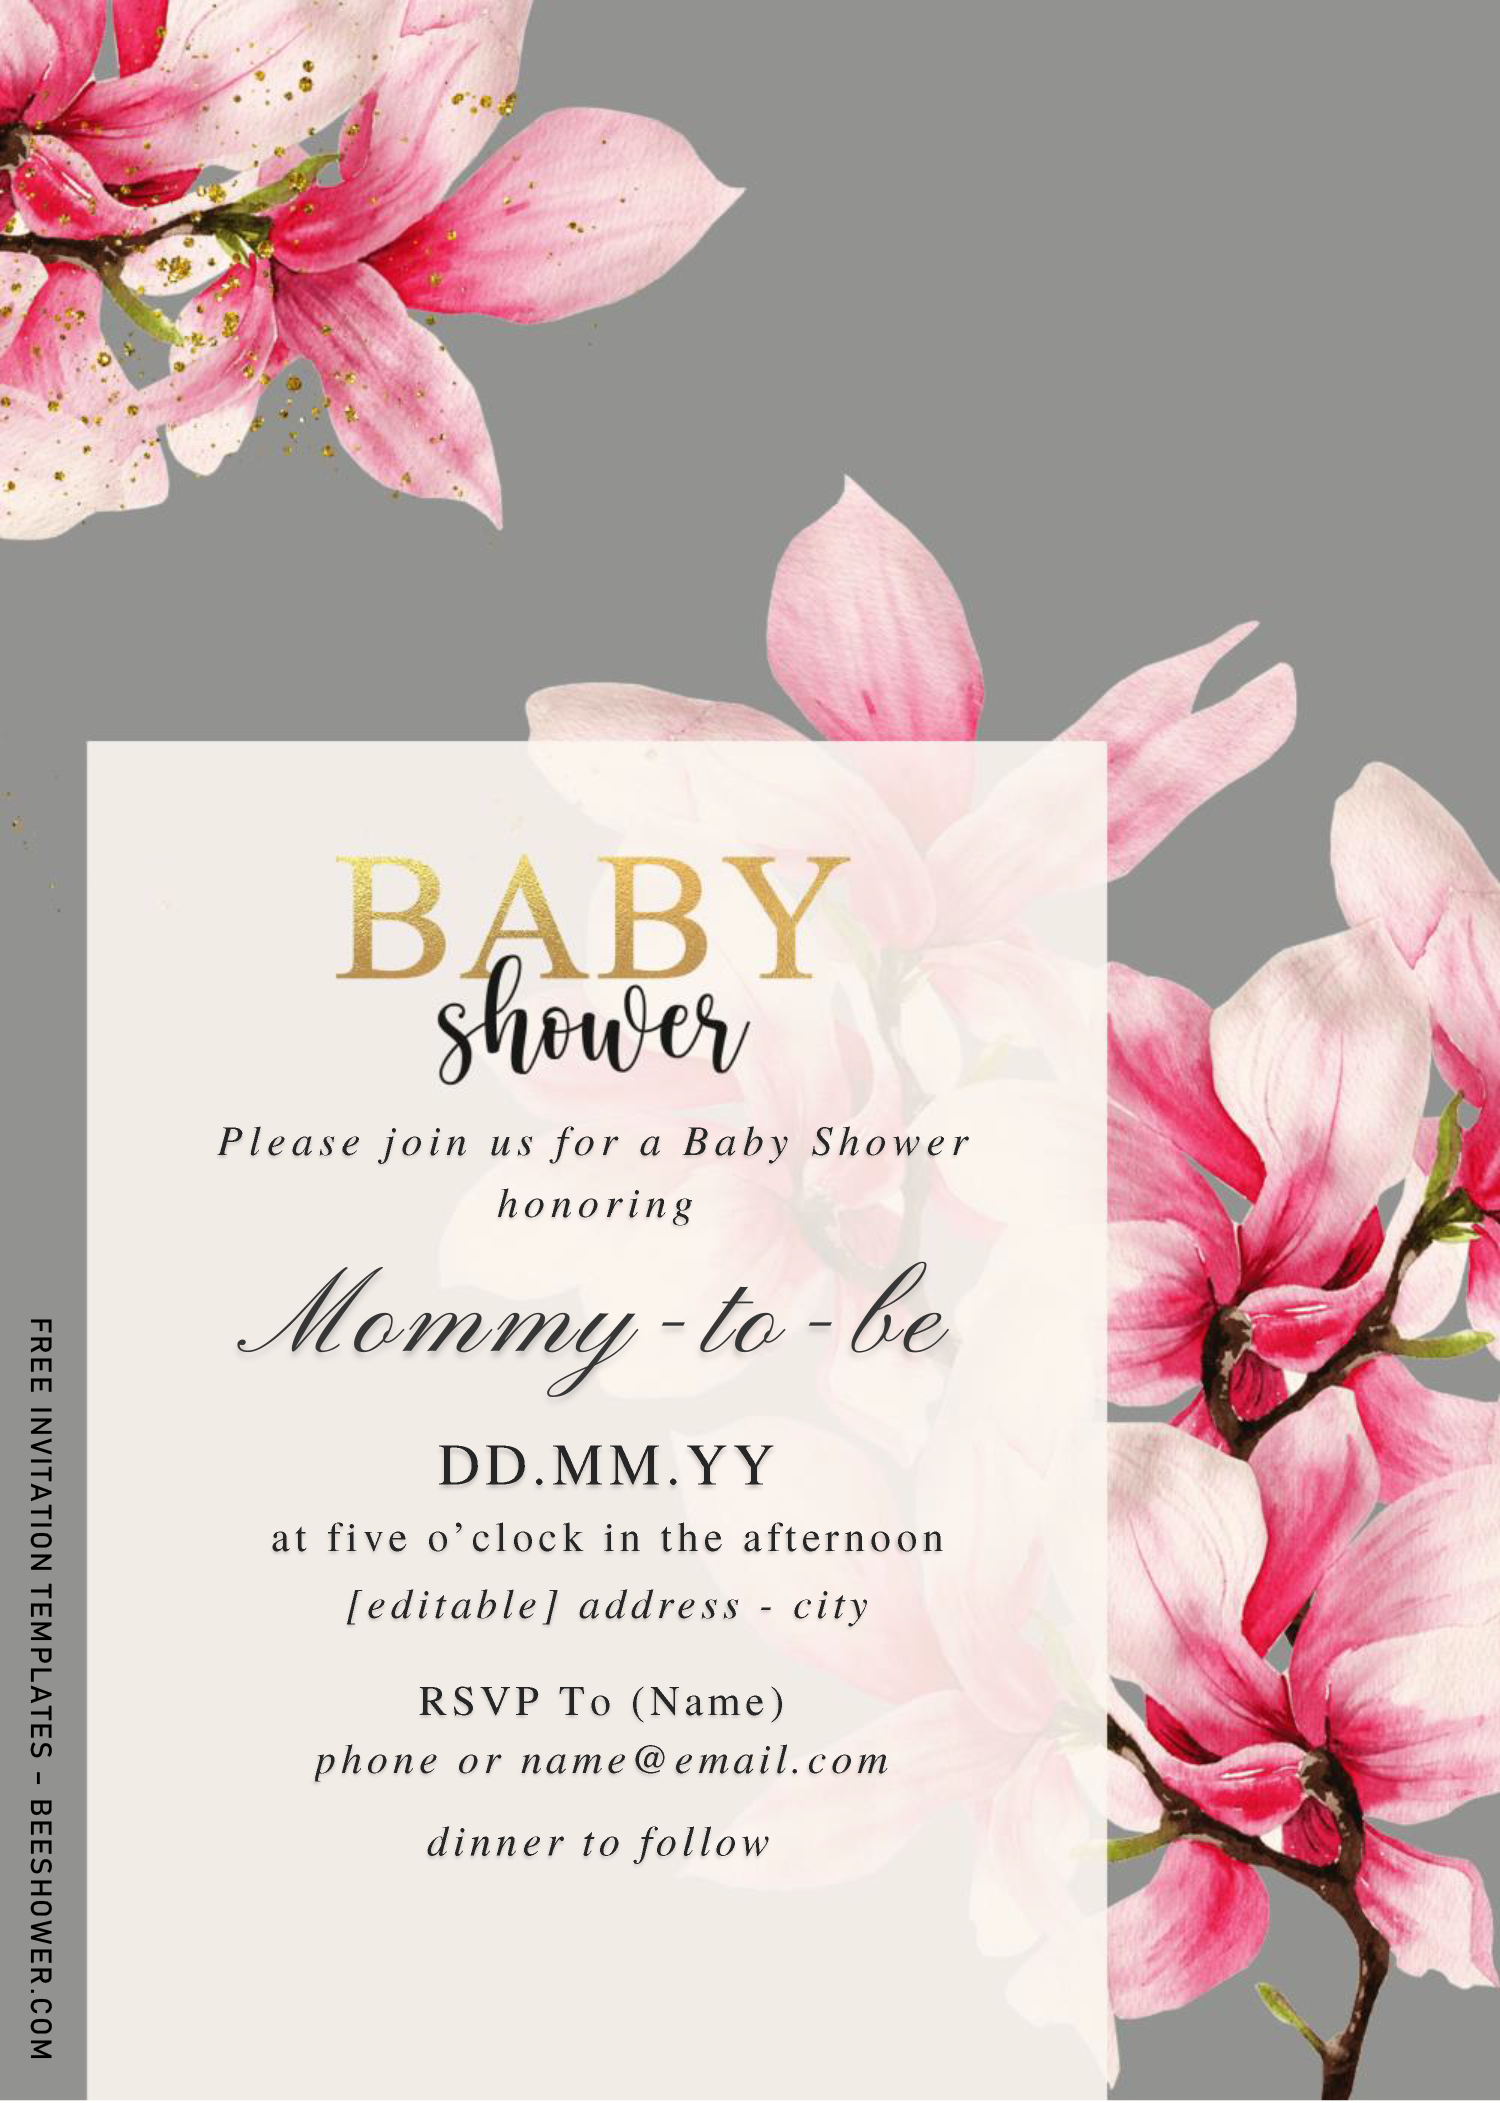 Magnolia Baby Shower Invitation Templates Editable With Microsoft Free Printable Baby Shower Invitations Invitation Template Baby Shower Invitation Templates